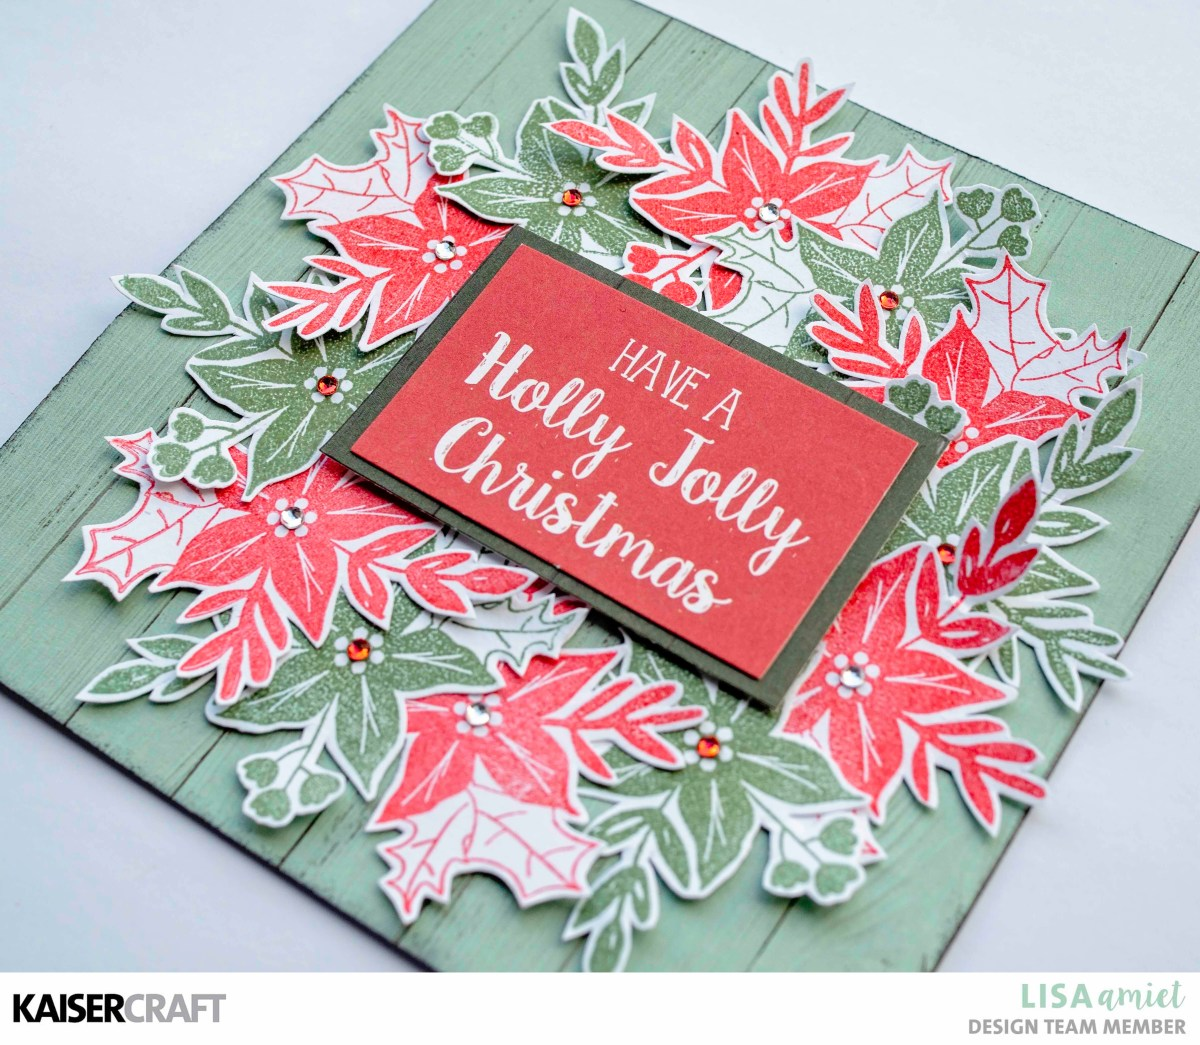 Peppermint Kisses Christmas Cards & Envelopes